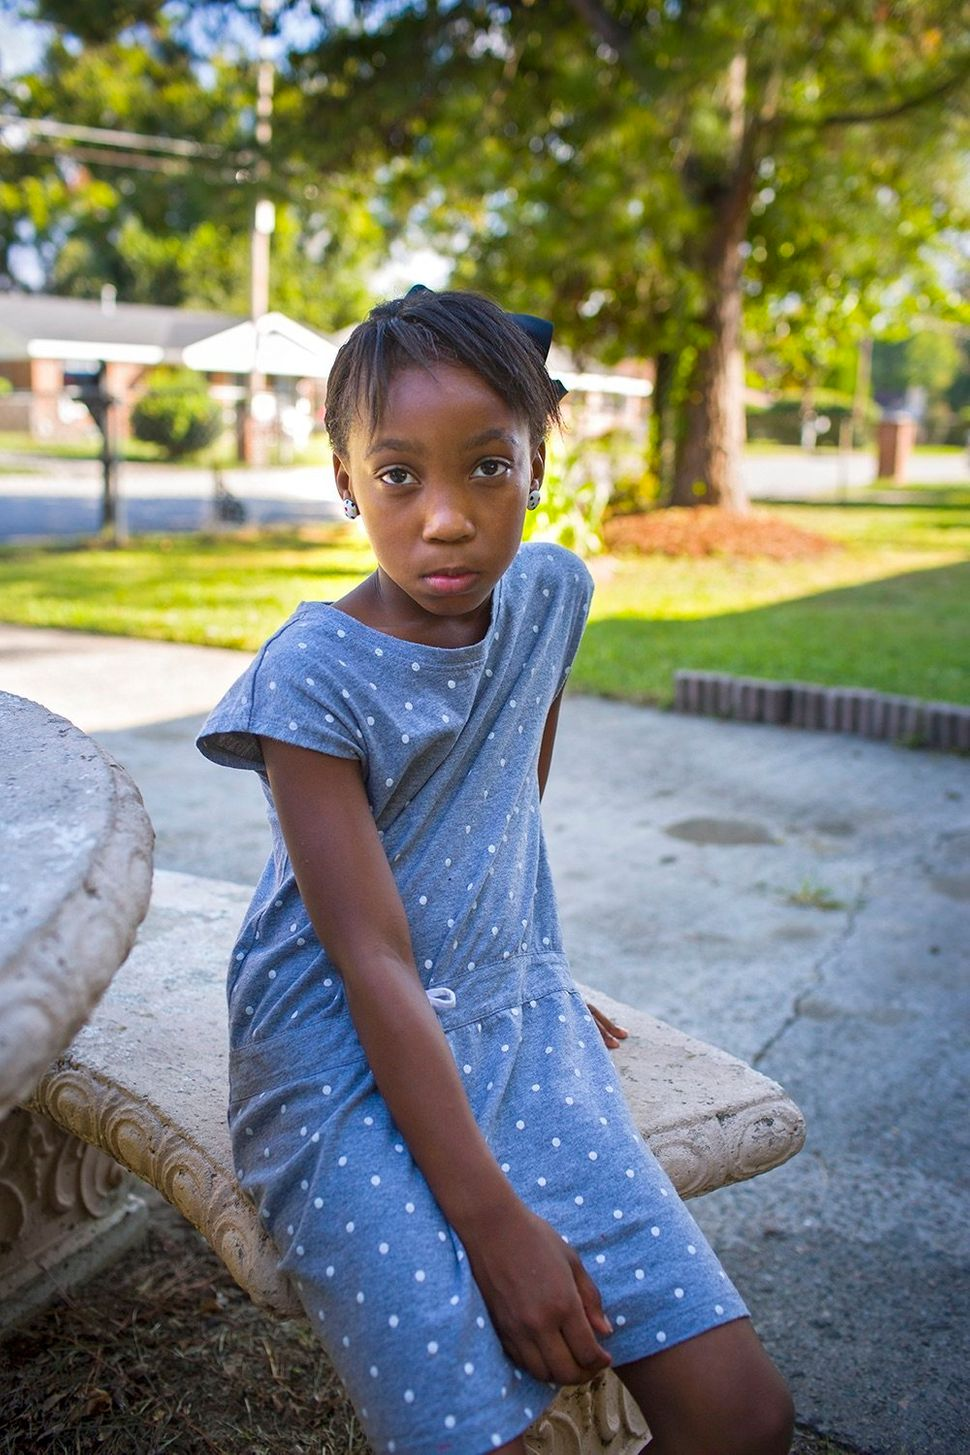 Eight-year-old Taniya was shot by another third-grader in their classroom. The boy had found the gun in his home and brought